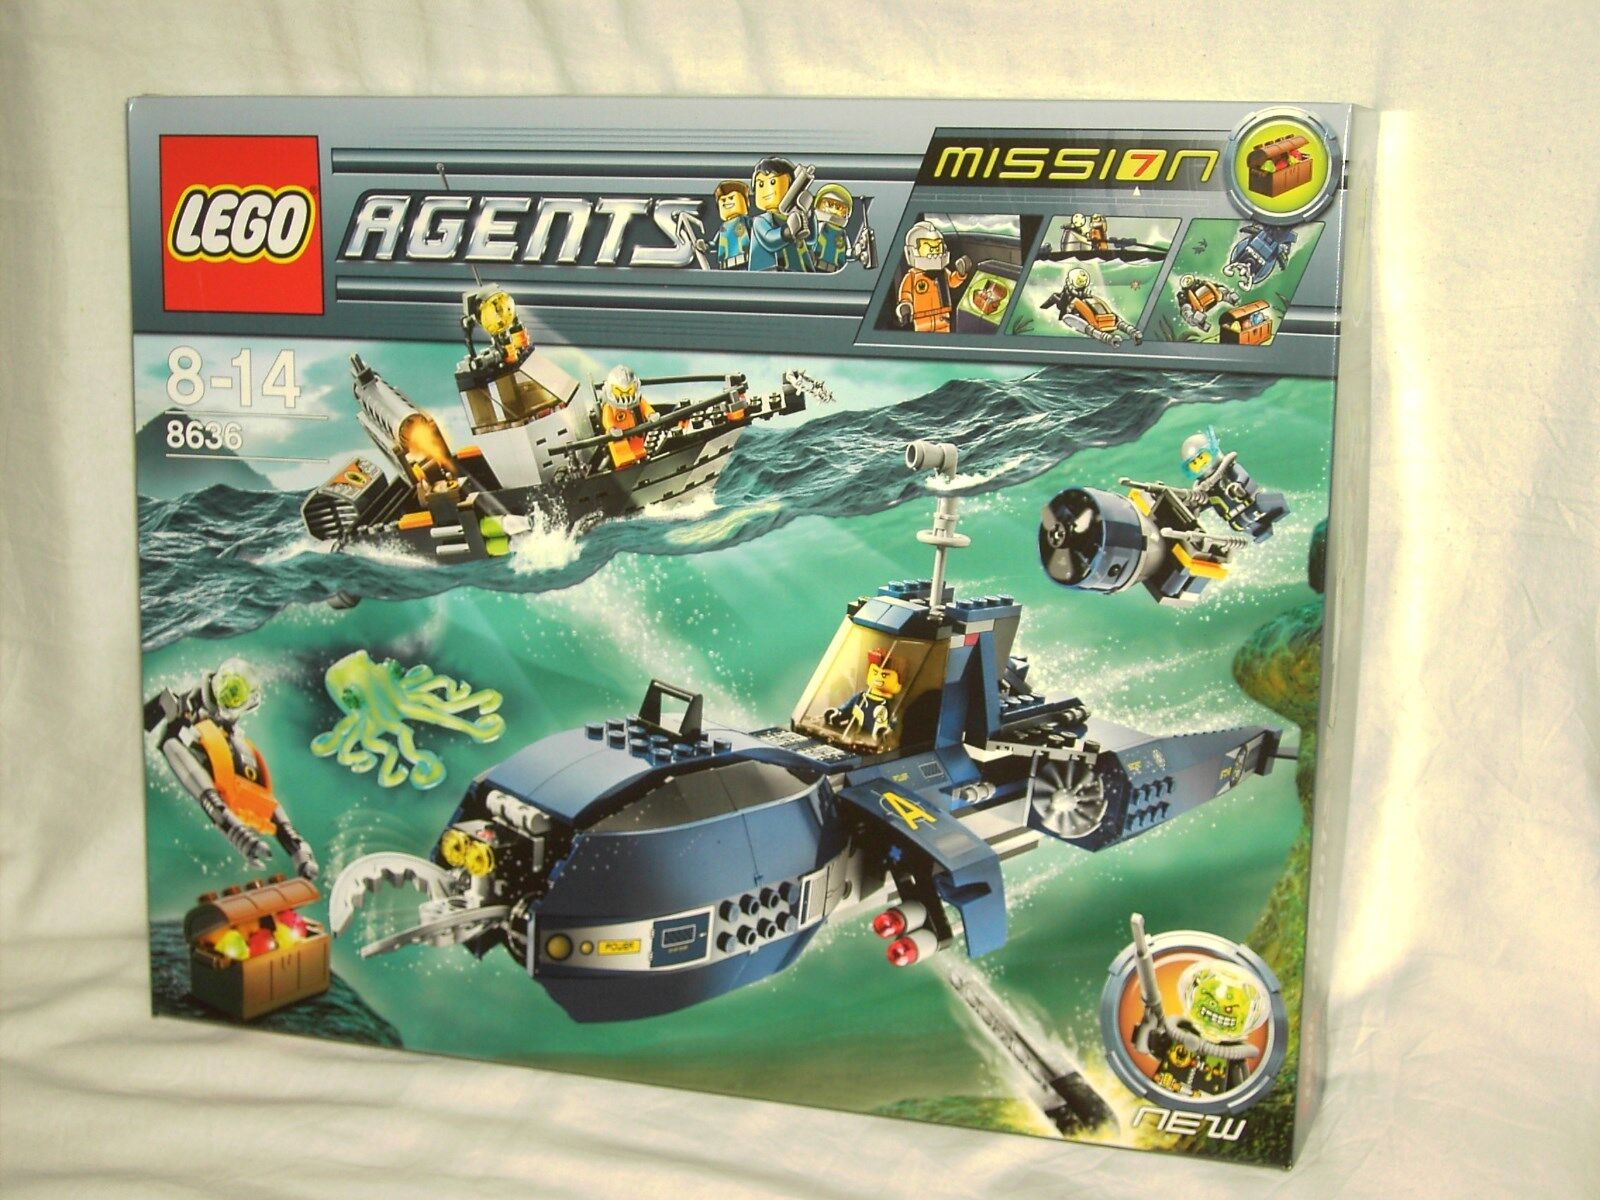 LEGO AGENTS 8636 MISSION 7 - DEEP SEA QUEST      NEW AND SEALED